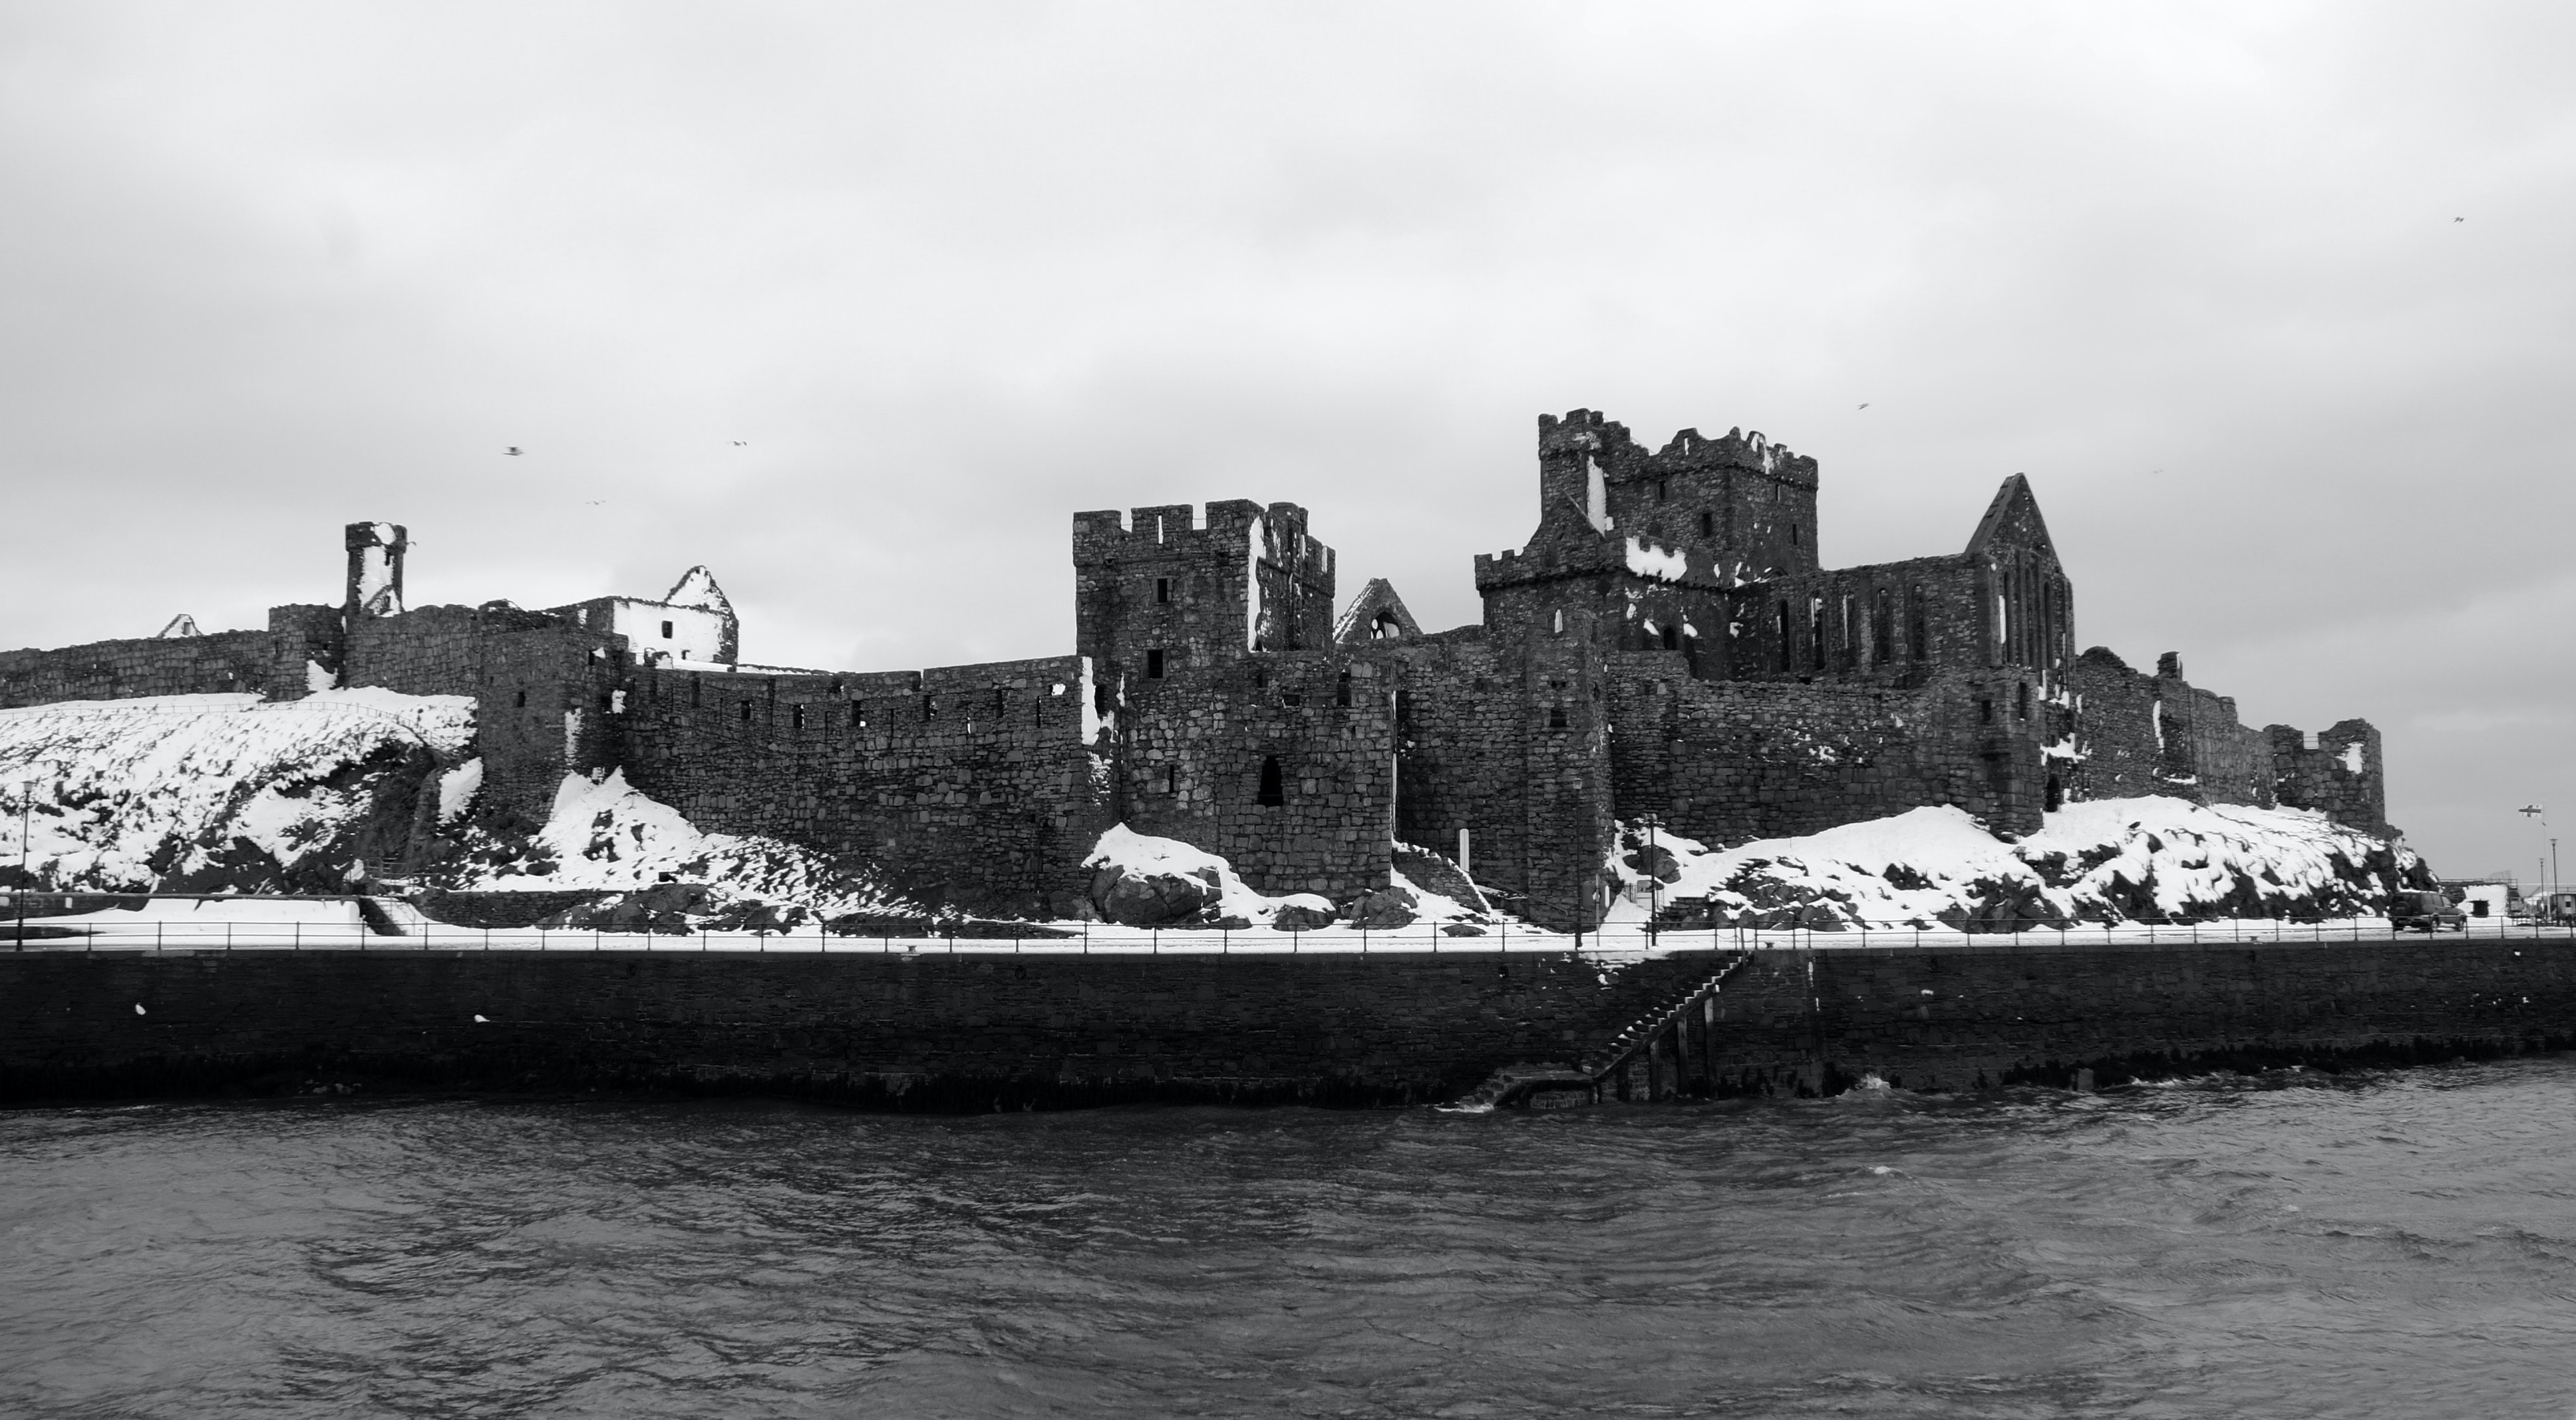 Ancient castle ruins on a winter day surrounded by water